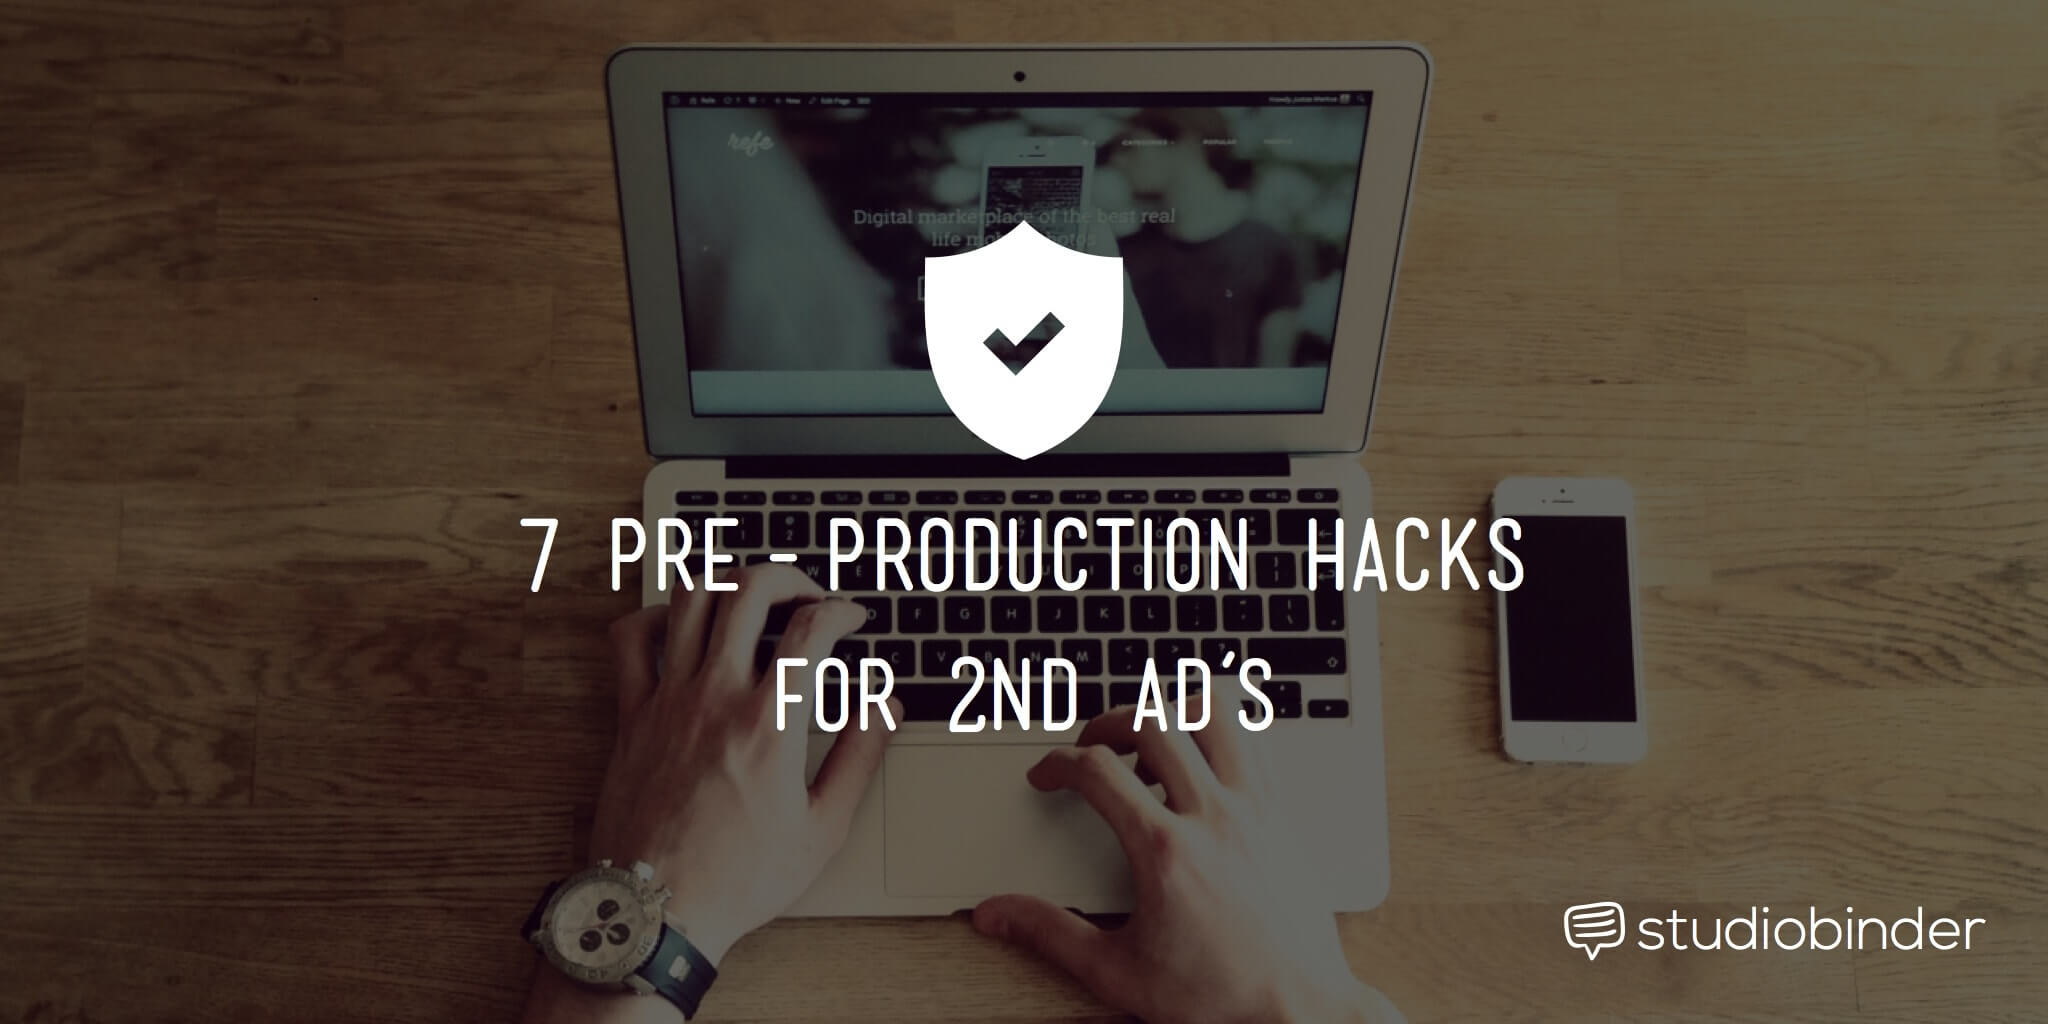 7 Pre-Production Hacks for a 2nd AD - StudioBinder